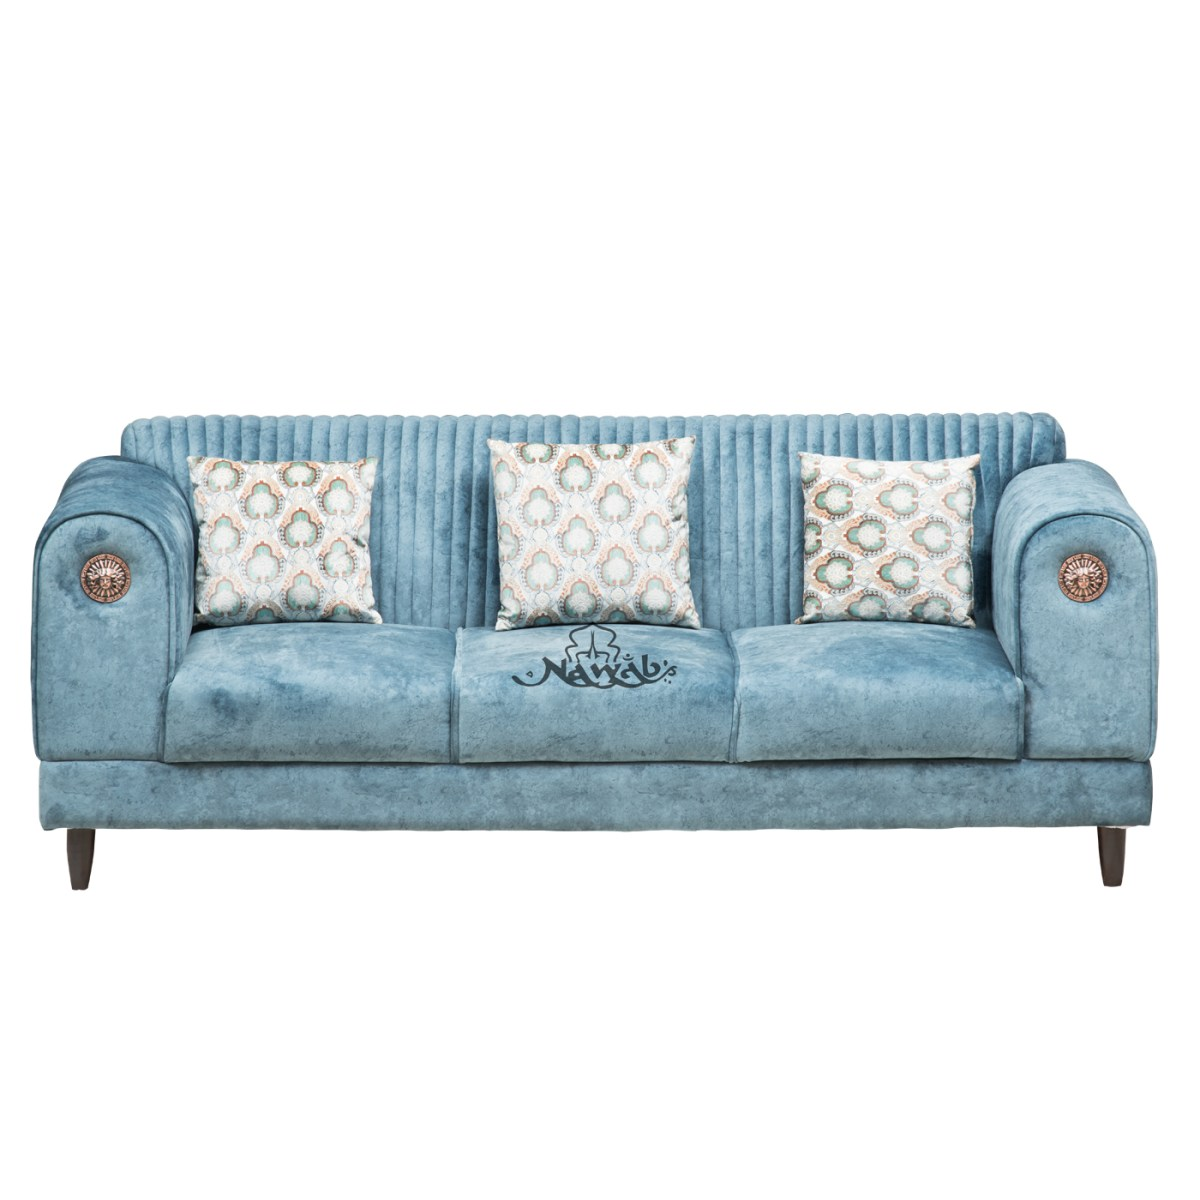 3-seater-suede-fabric-wooden-frame-with-foam-padding